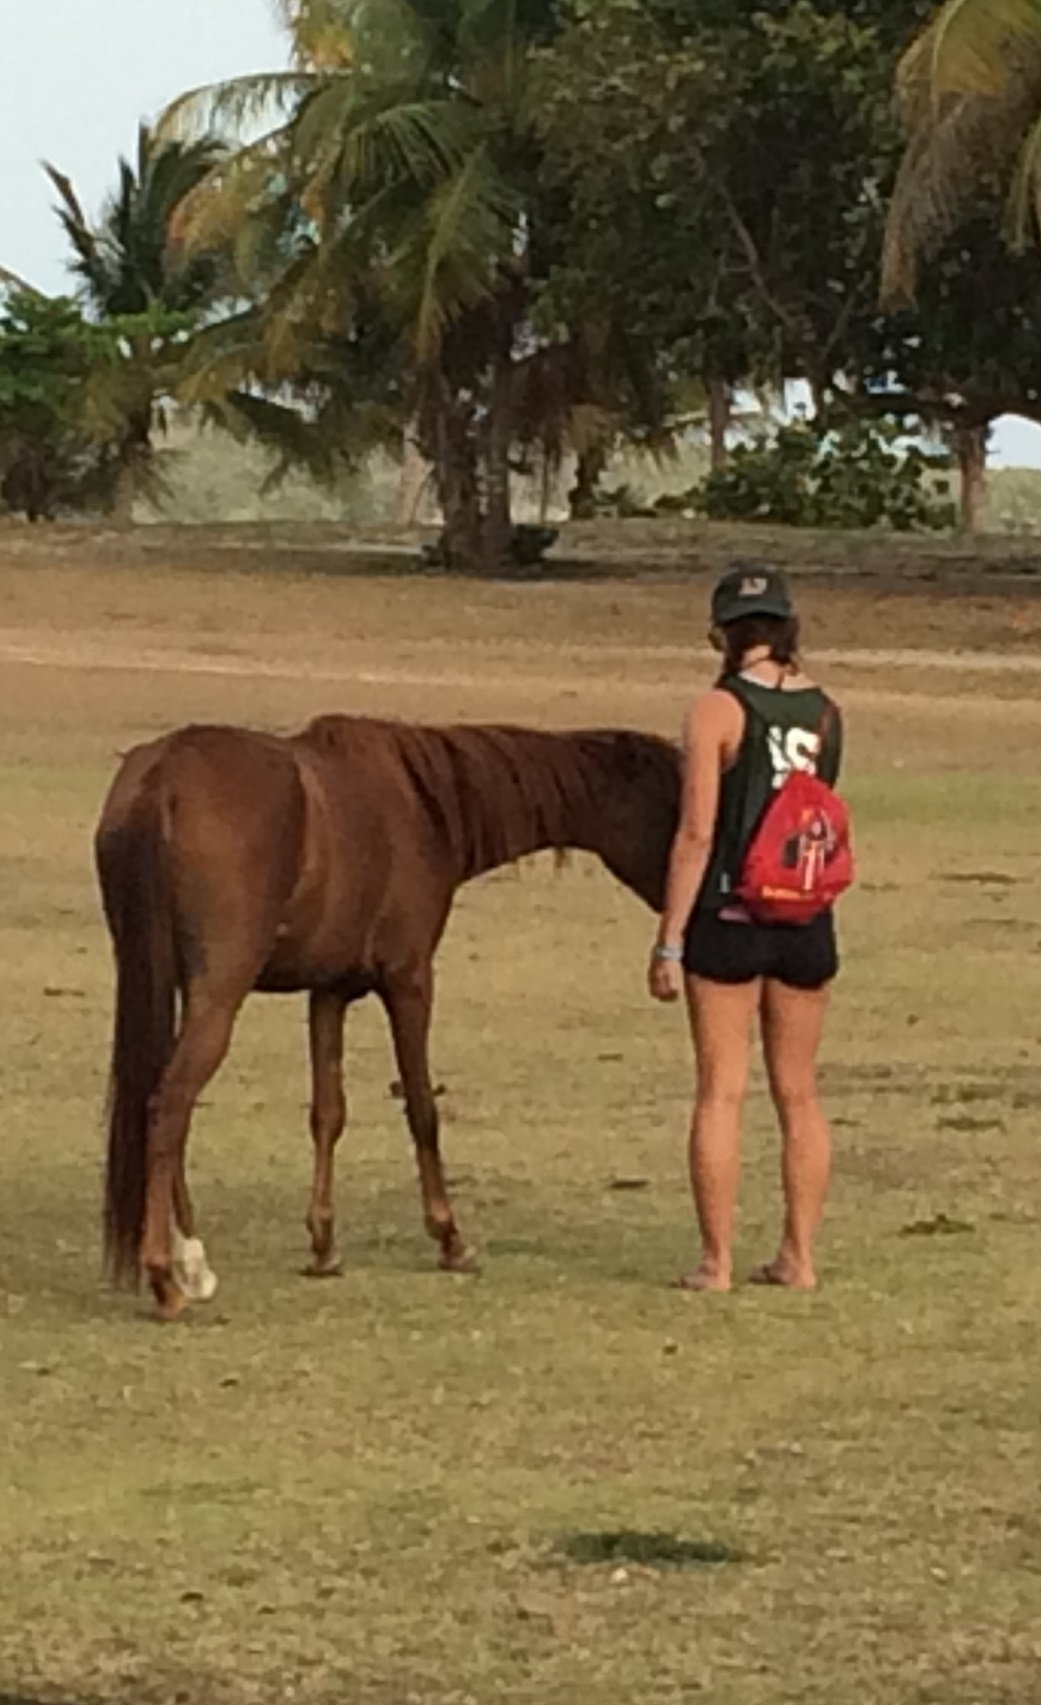 Caroline Myers: Caroline is attending pre-veterinary program in NY. In her free time she enjoys playing volleyball and working at an equine facility.